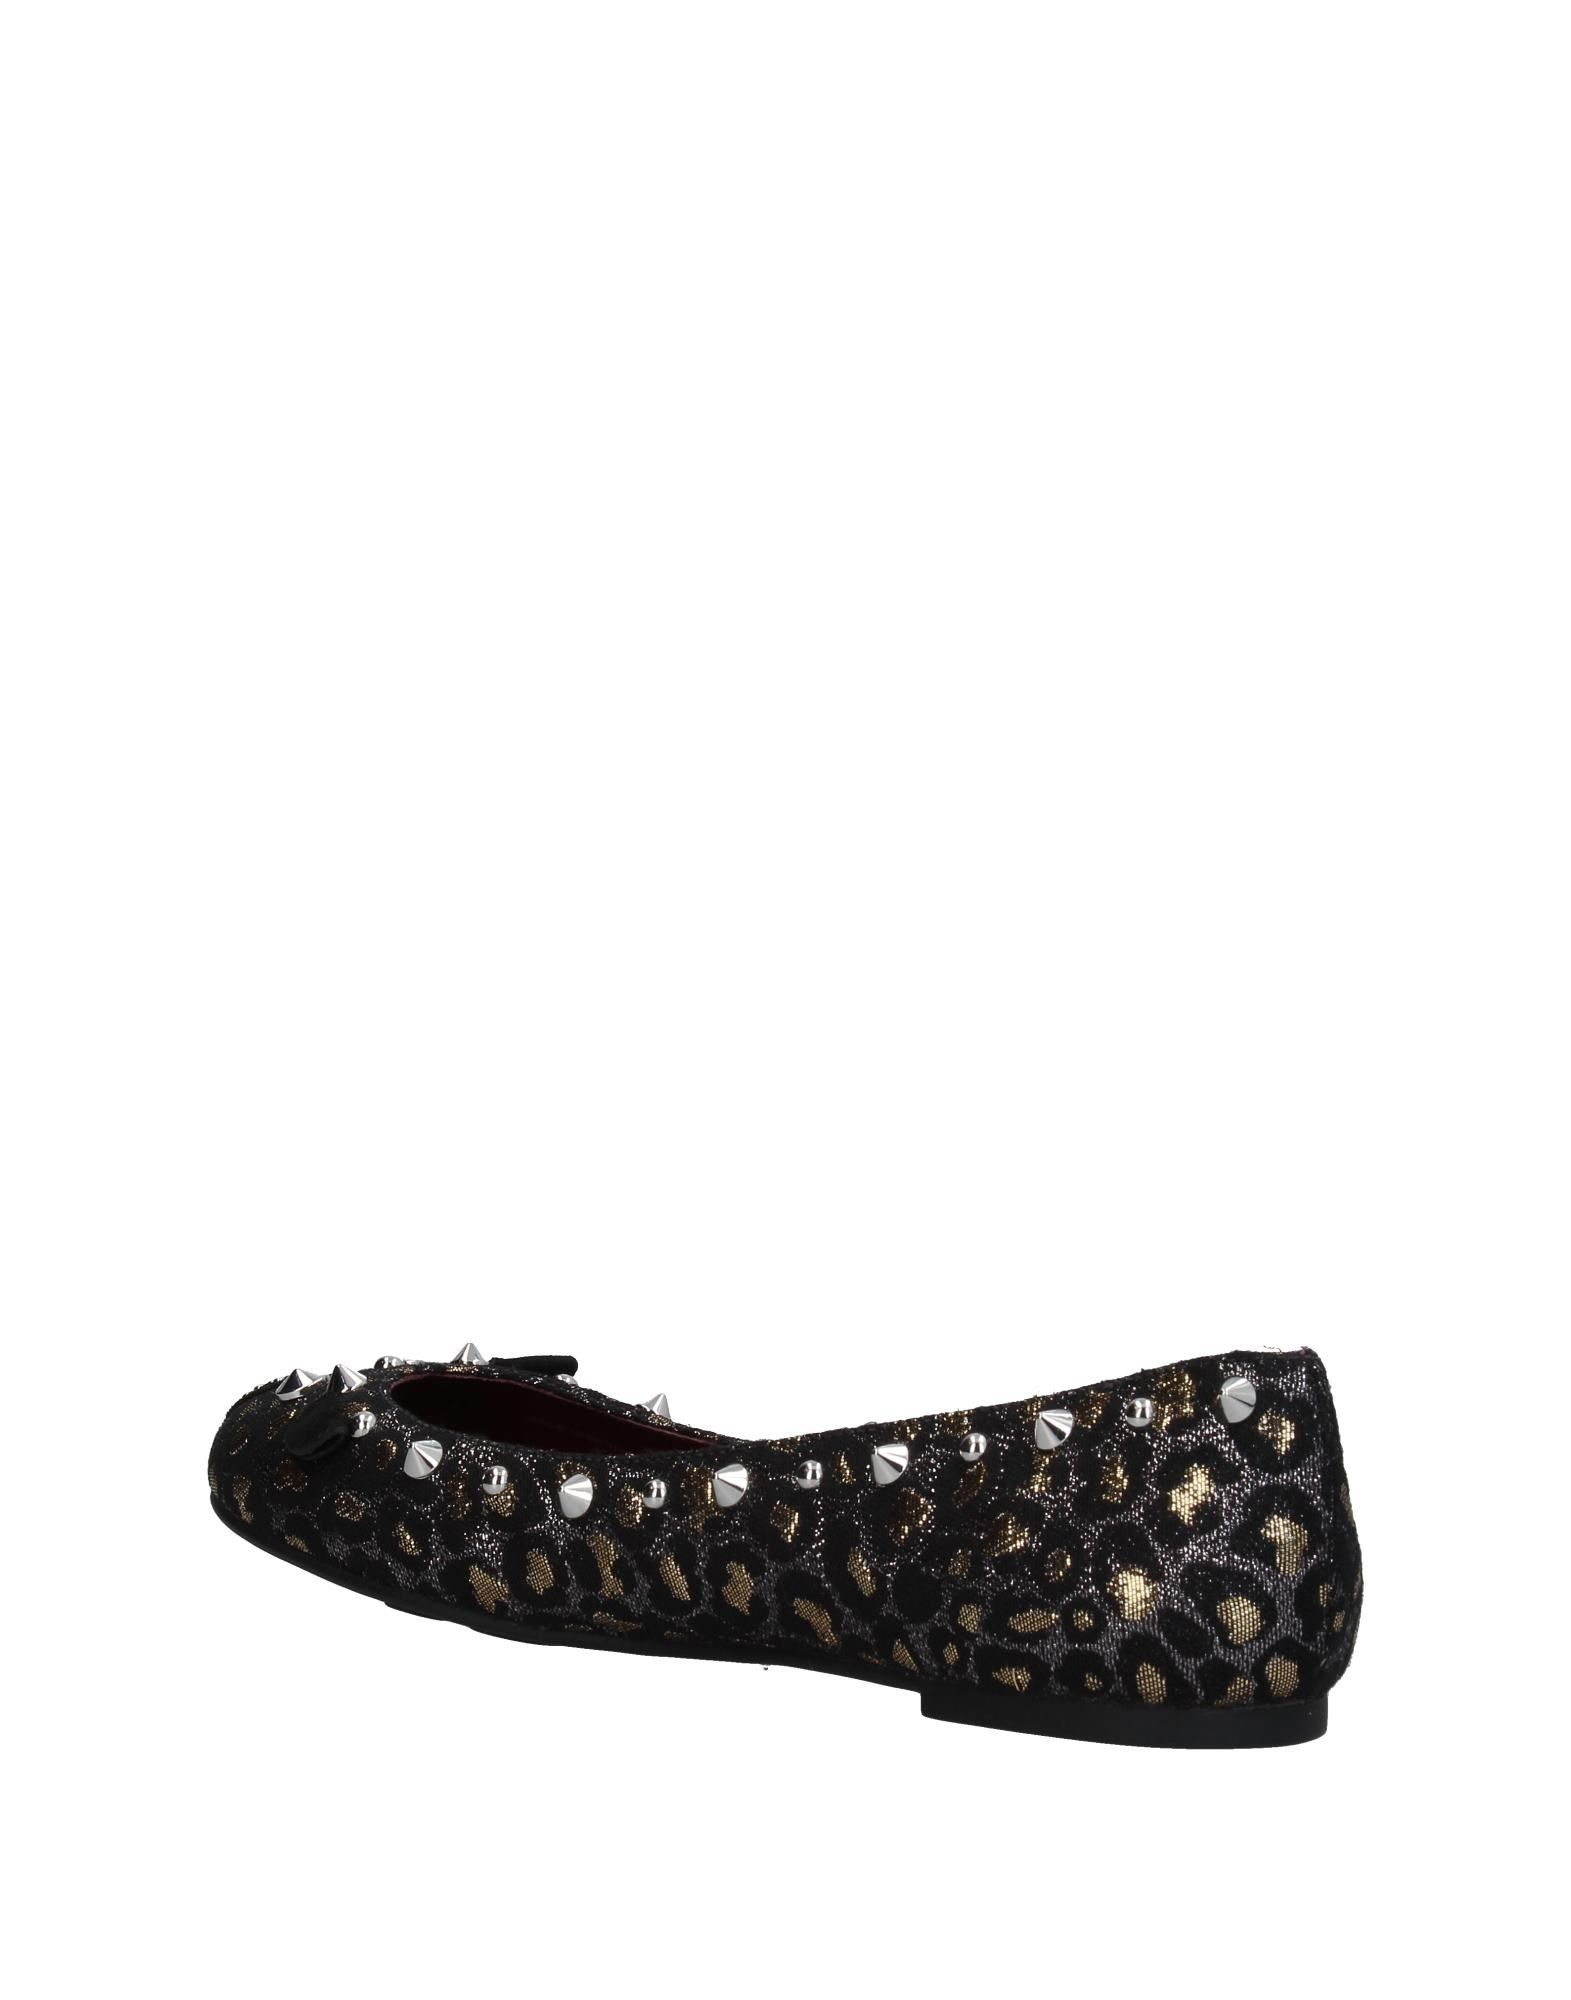 Ballerines Marc By Marc Jacobs Femme - Ballerines Marc By Marc Jacobs sur